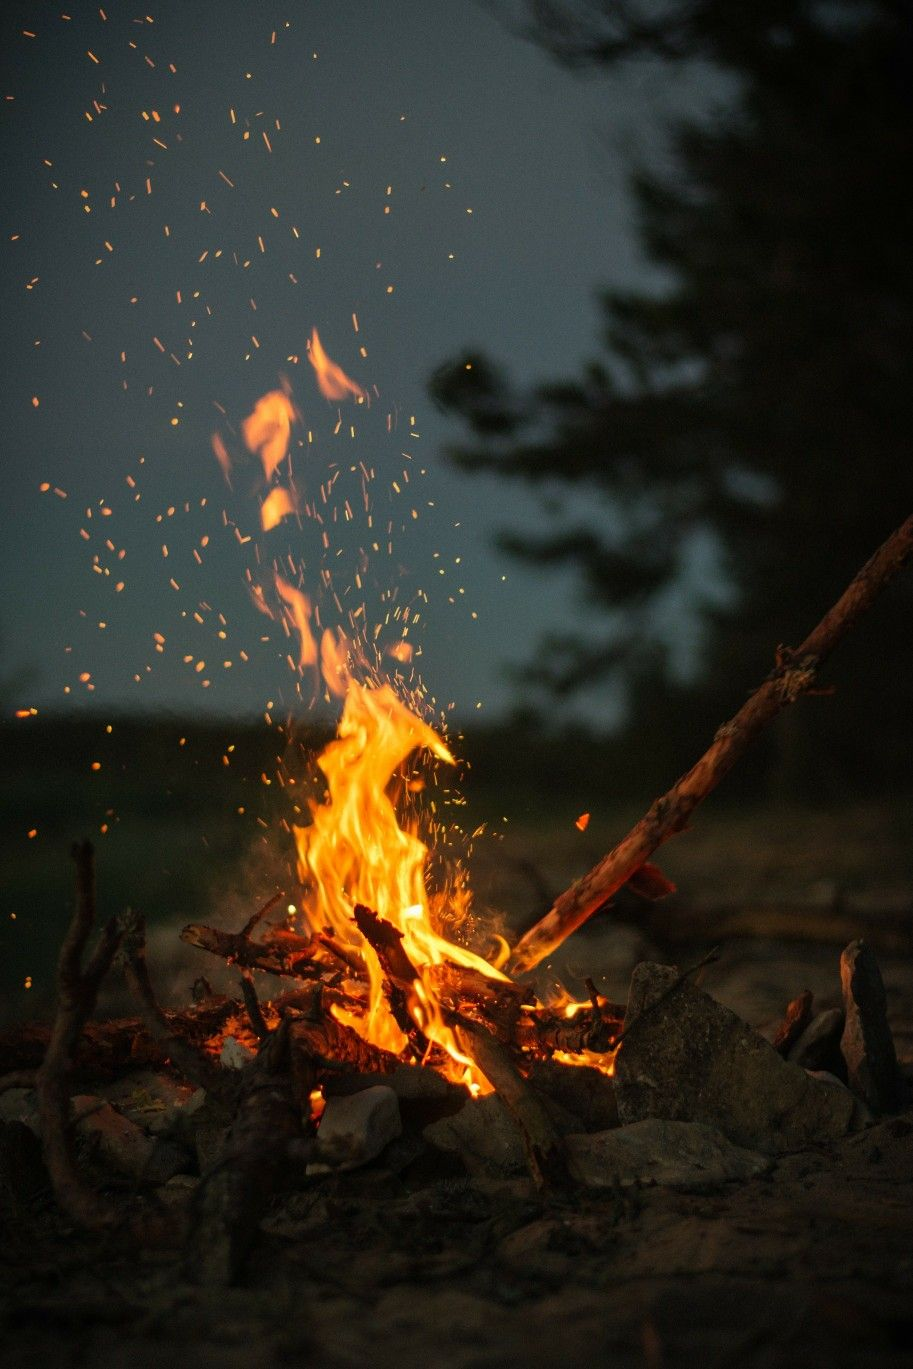 Pin By Abdelhakim On 4k Wallpaper Camping Wallpaper Fire Photography Nature Wallpaper